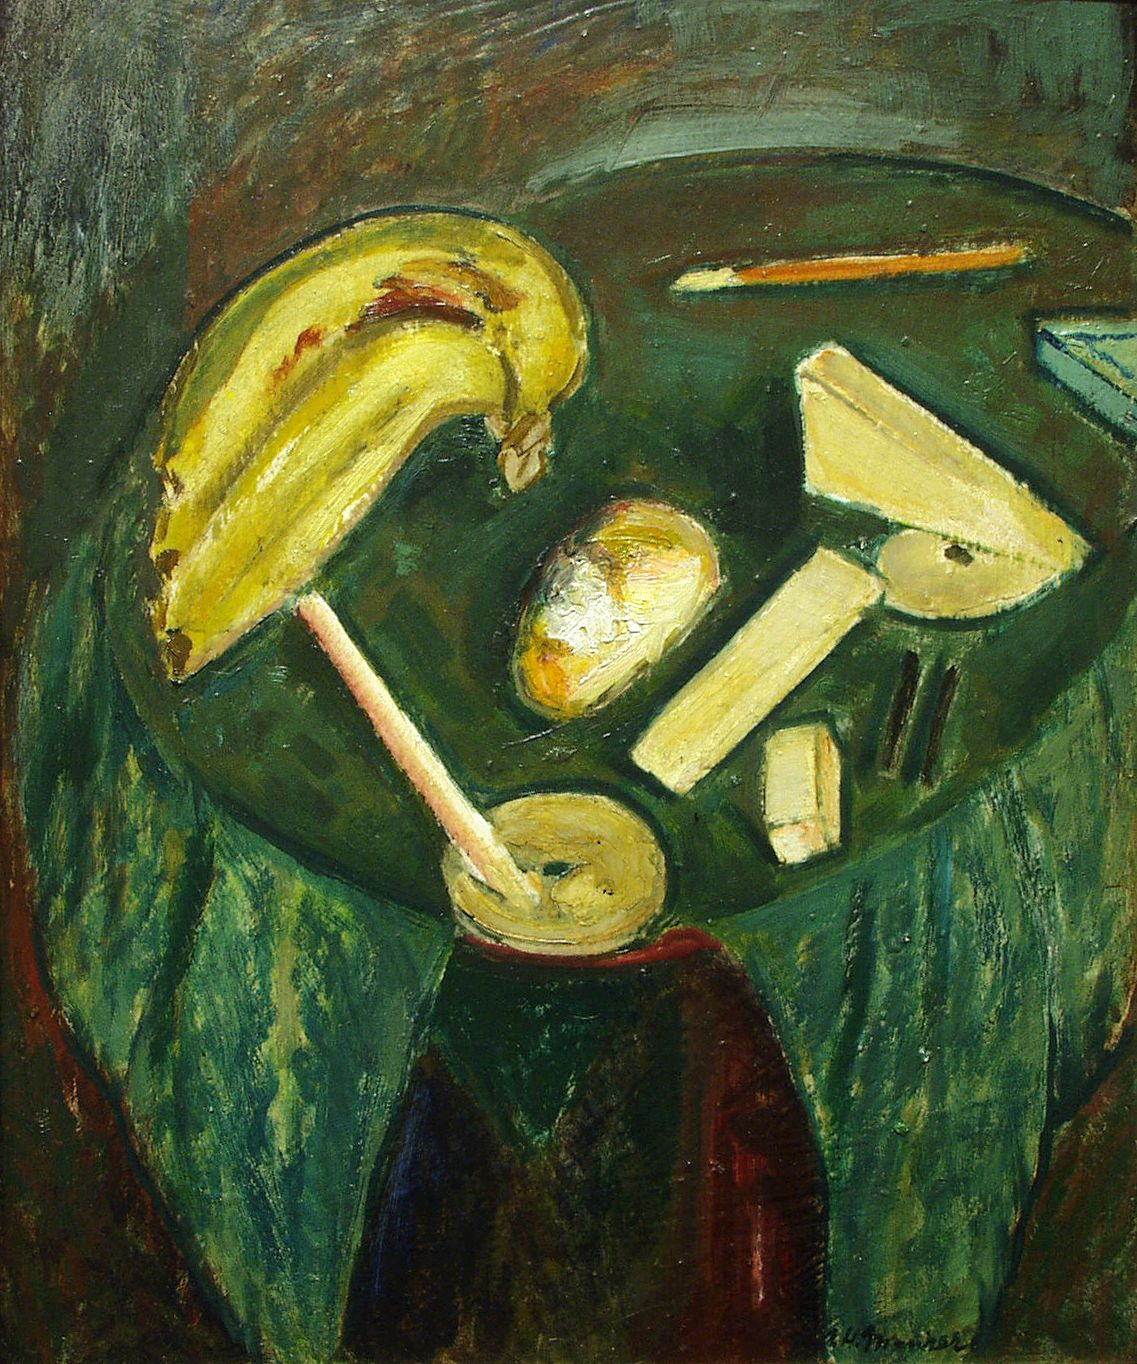 alfred maurer, Cubist Still Life, c. 1919, oil on gesso board, 21 1/2 x 17 3/4 inches